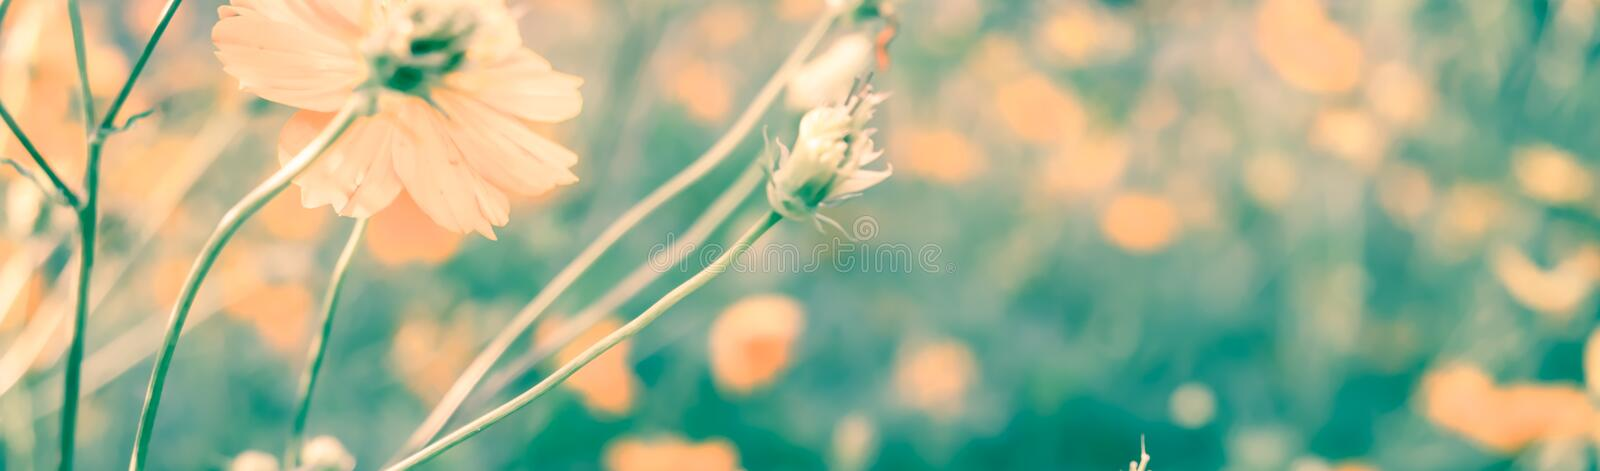 Vintage retro of flower in soft color and blurry style. For background with pastel tone royalty free stock images